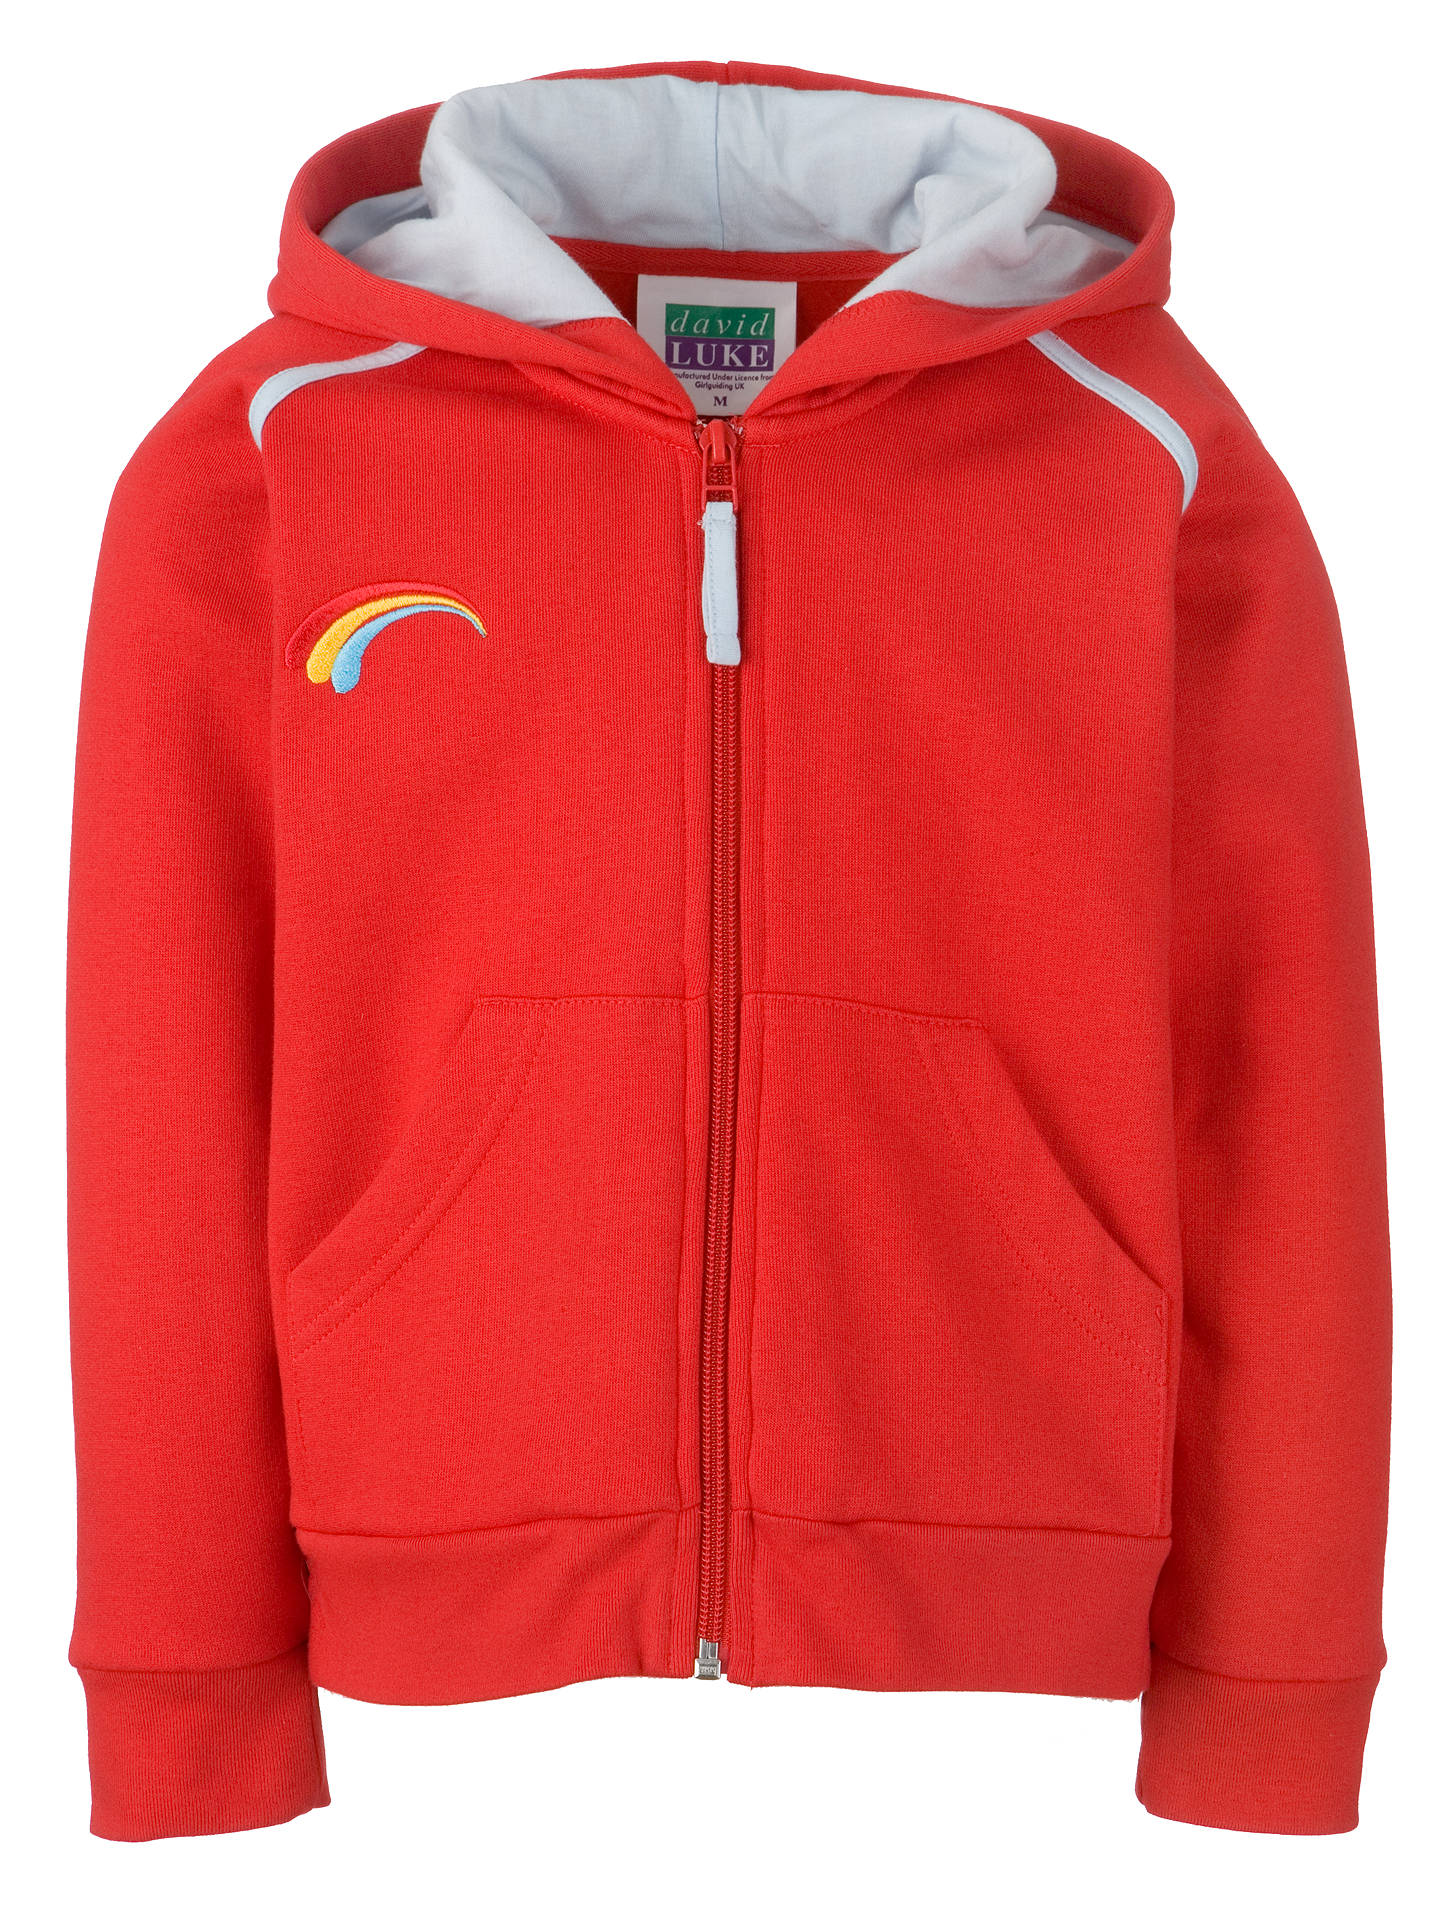 be045a368 Buy Rainbows Uniform Hooded Zip Top, Red, Small Online at johnlewis.com